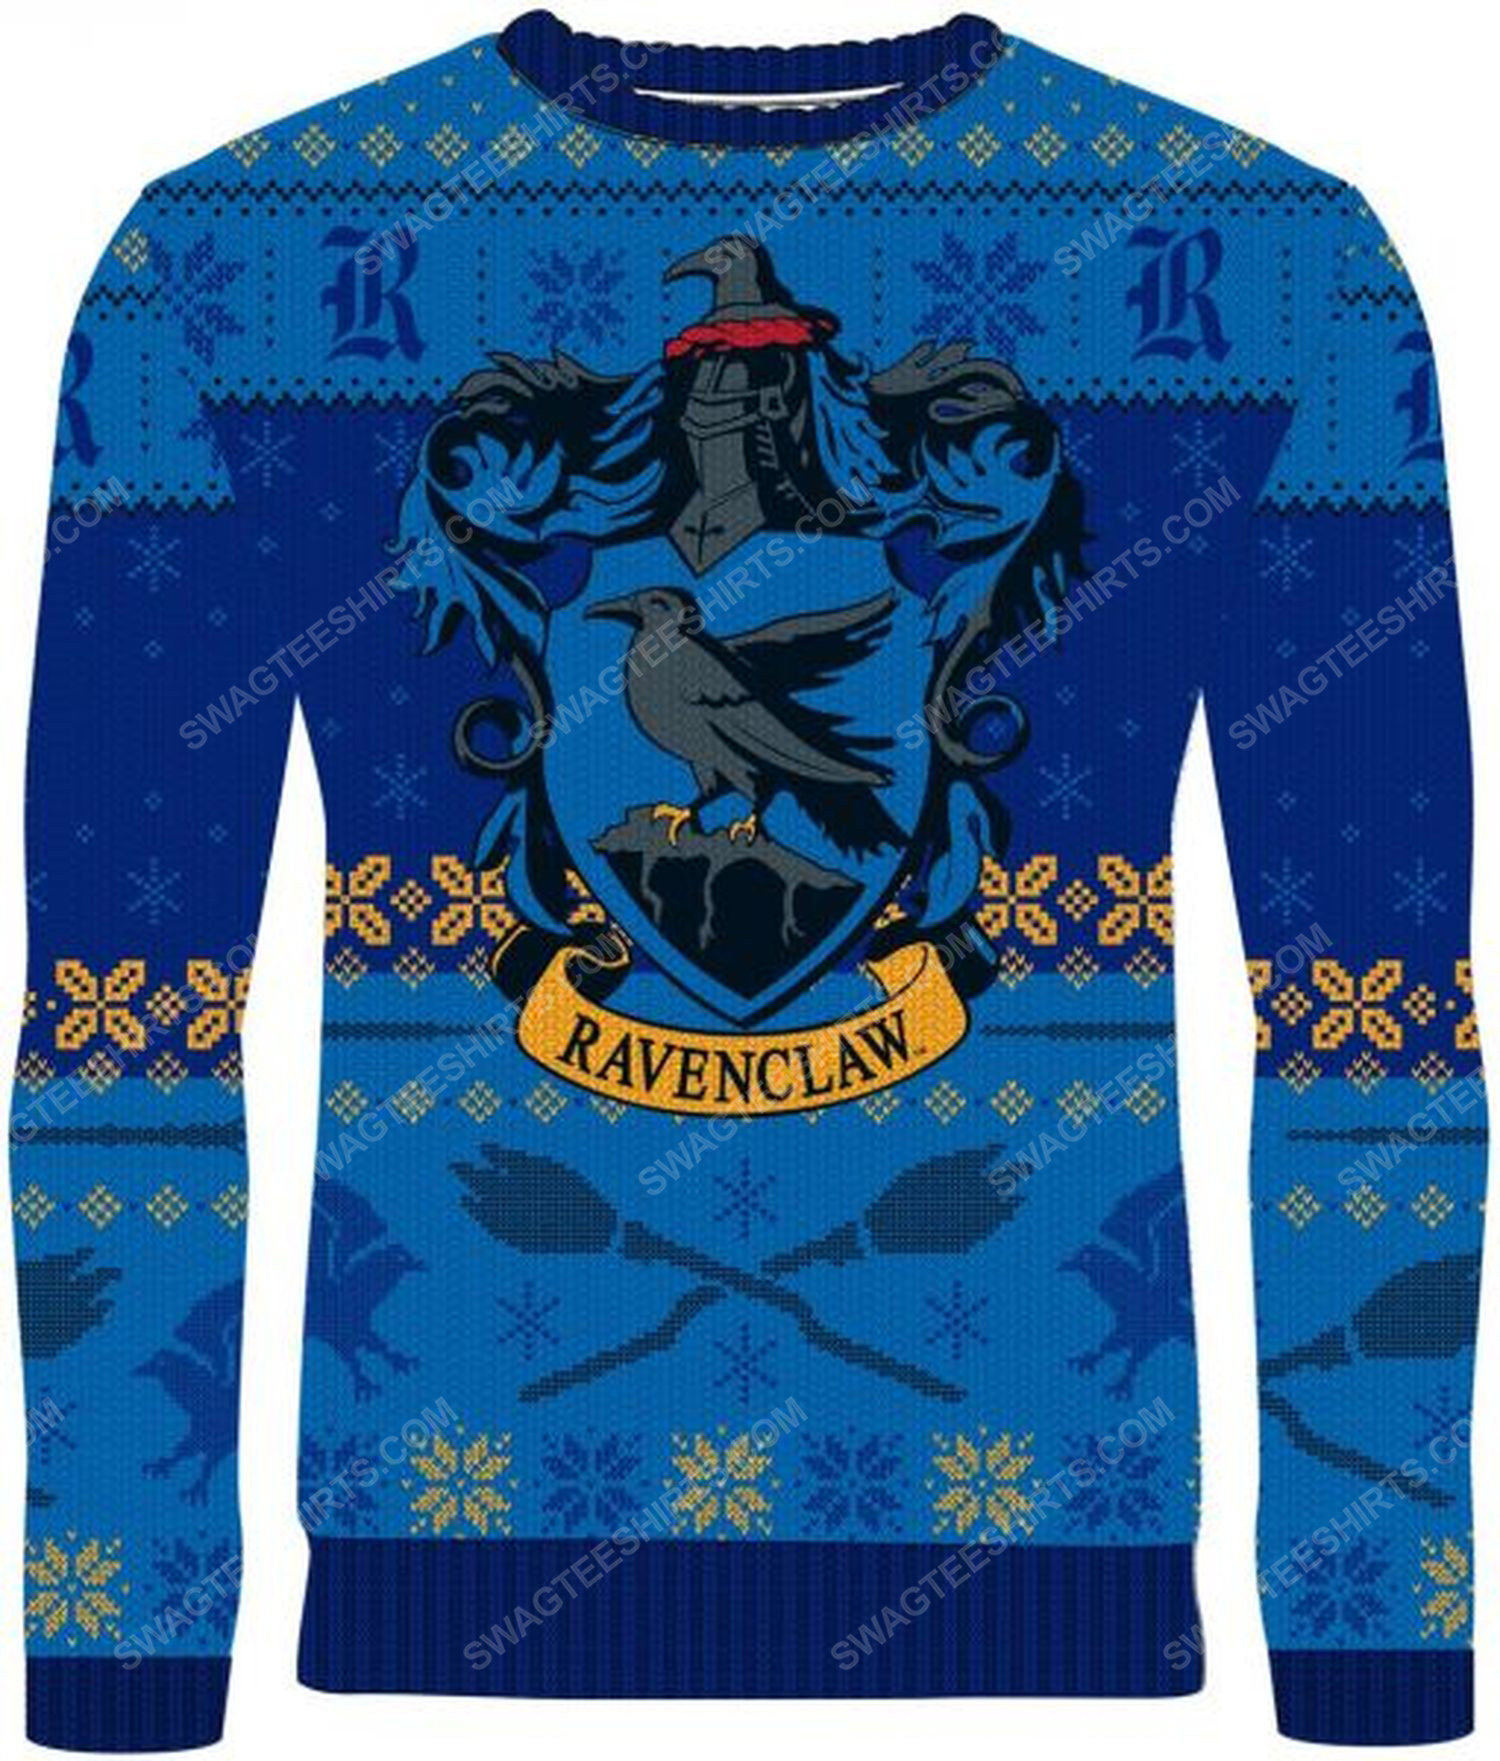 The ravenclaw harry potter full print ugly christmas sweater